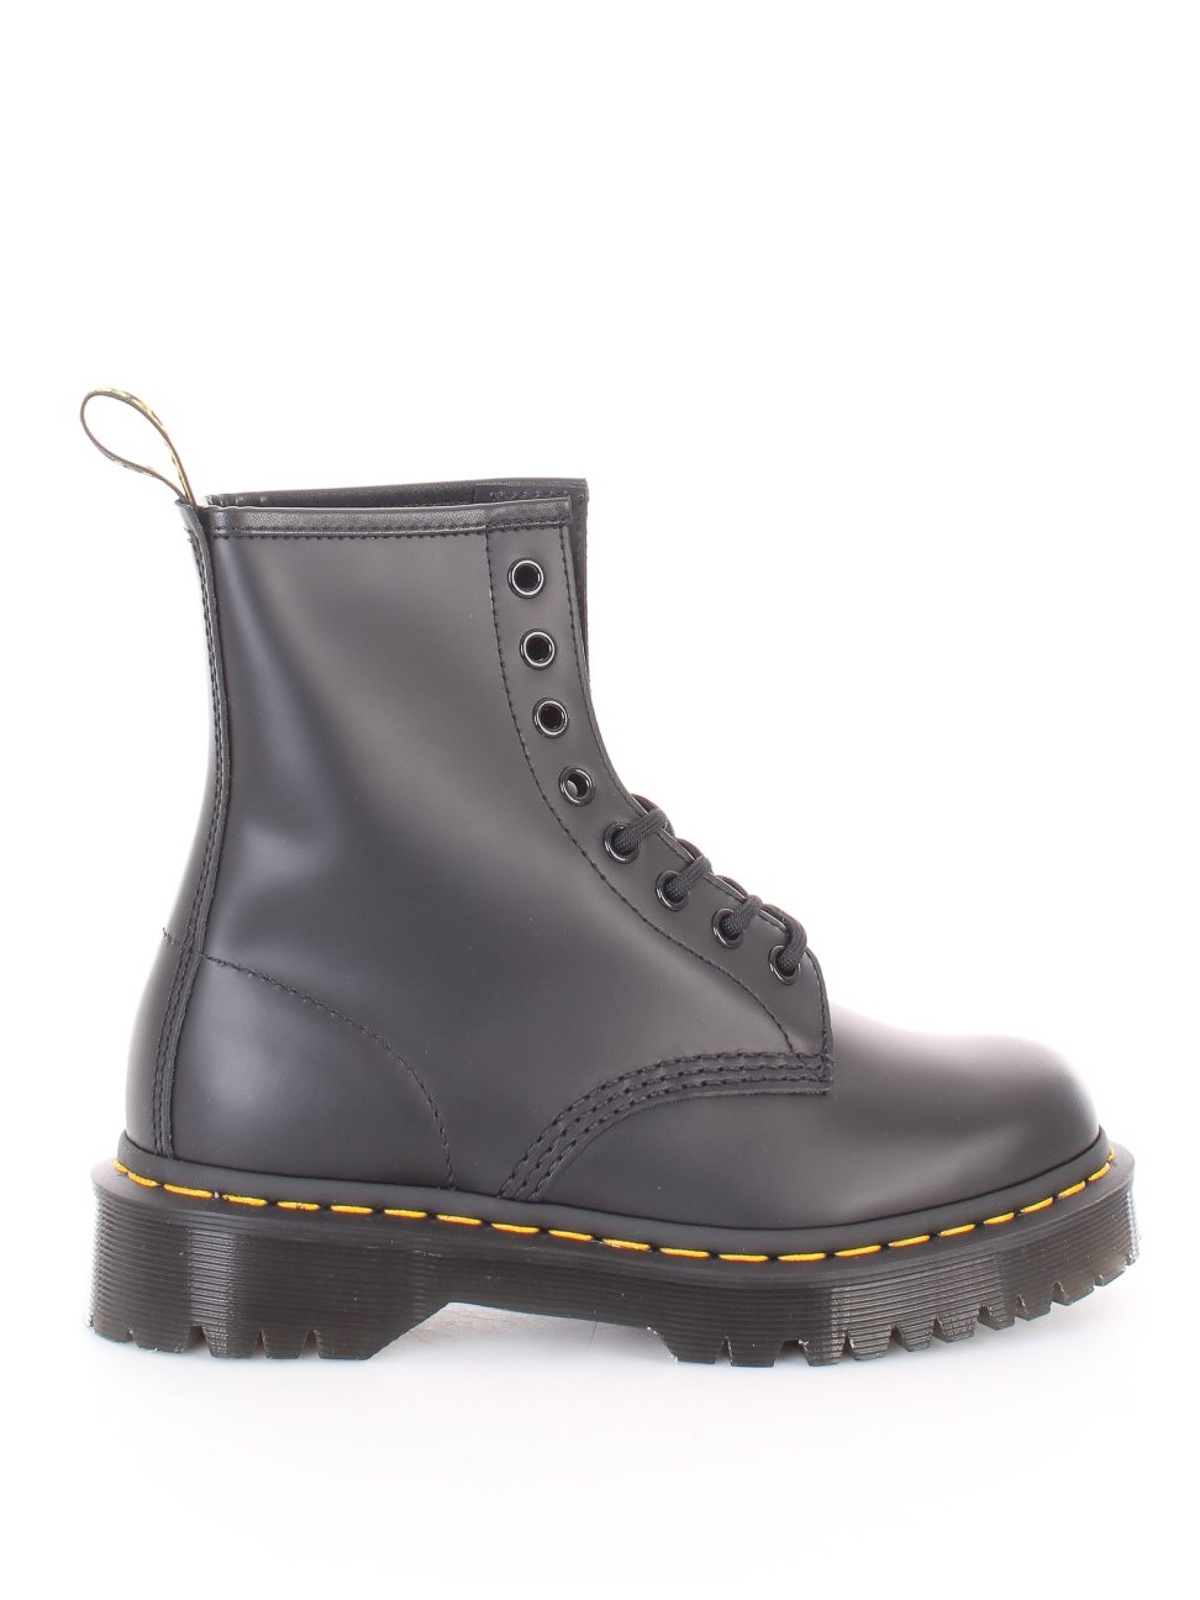 1460 Bex Smooth leather combat boots